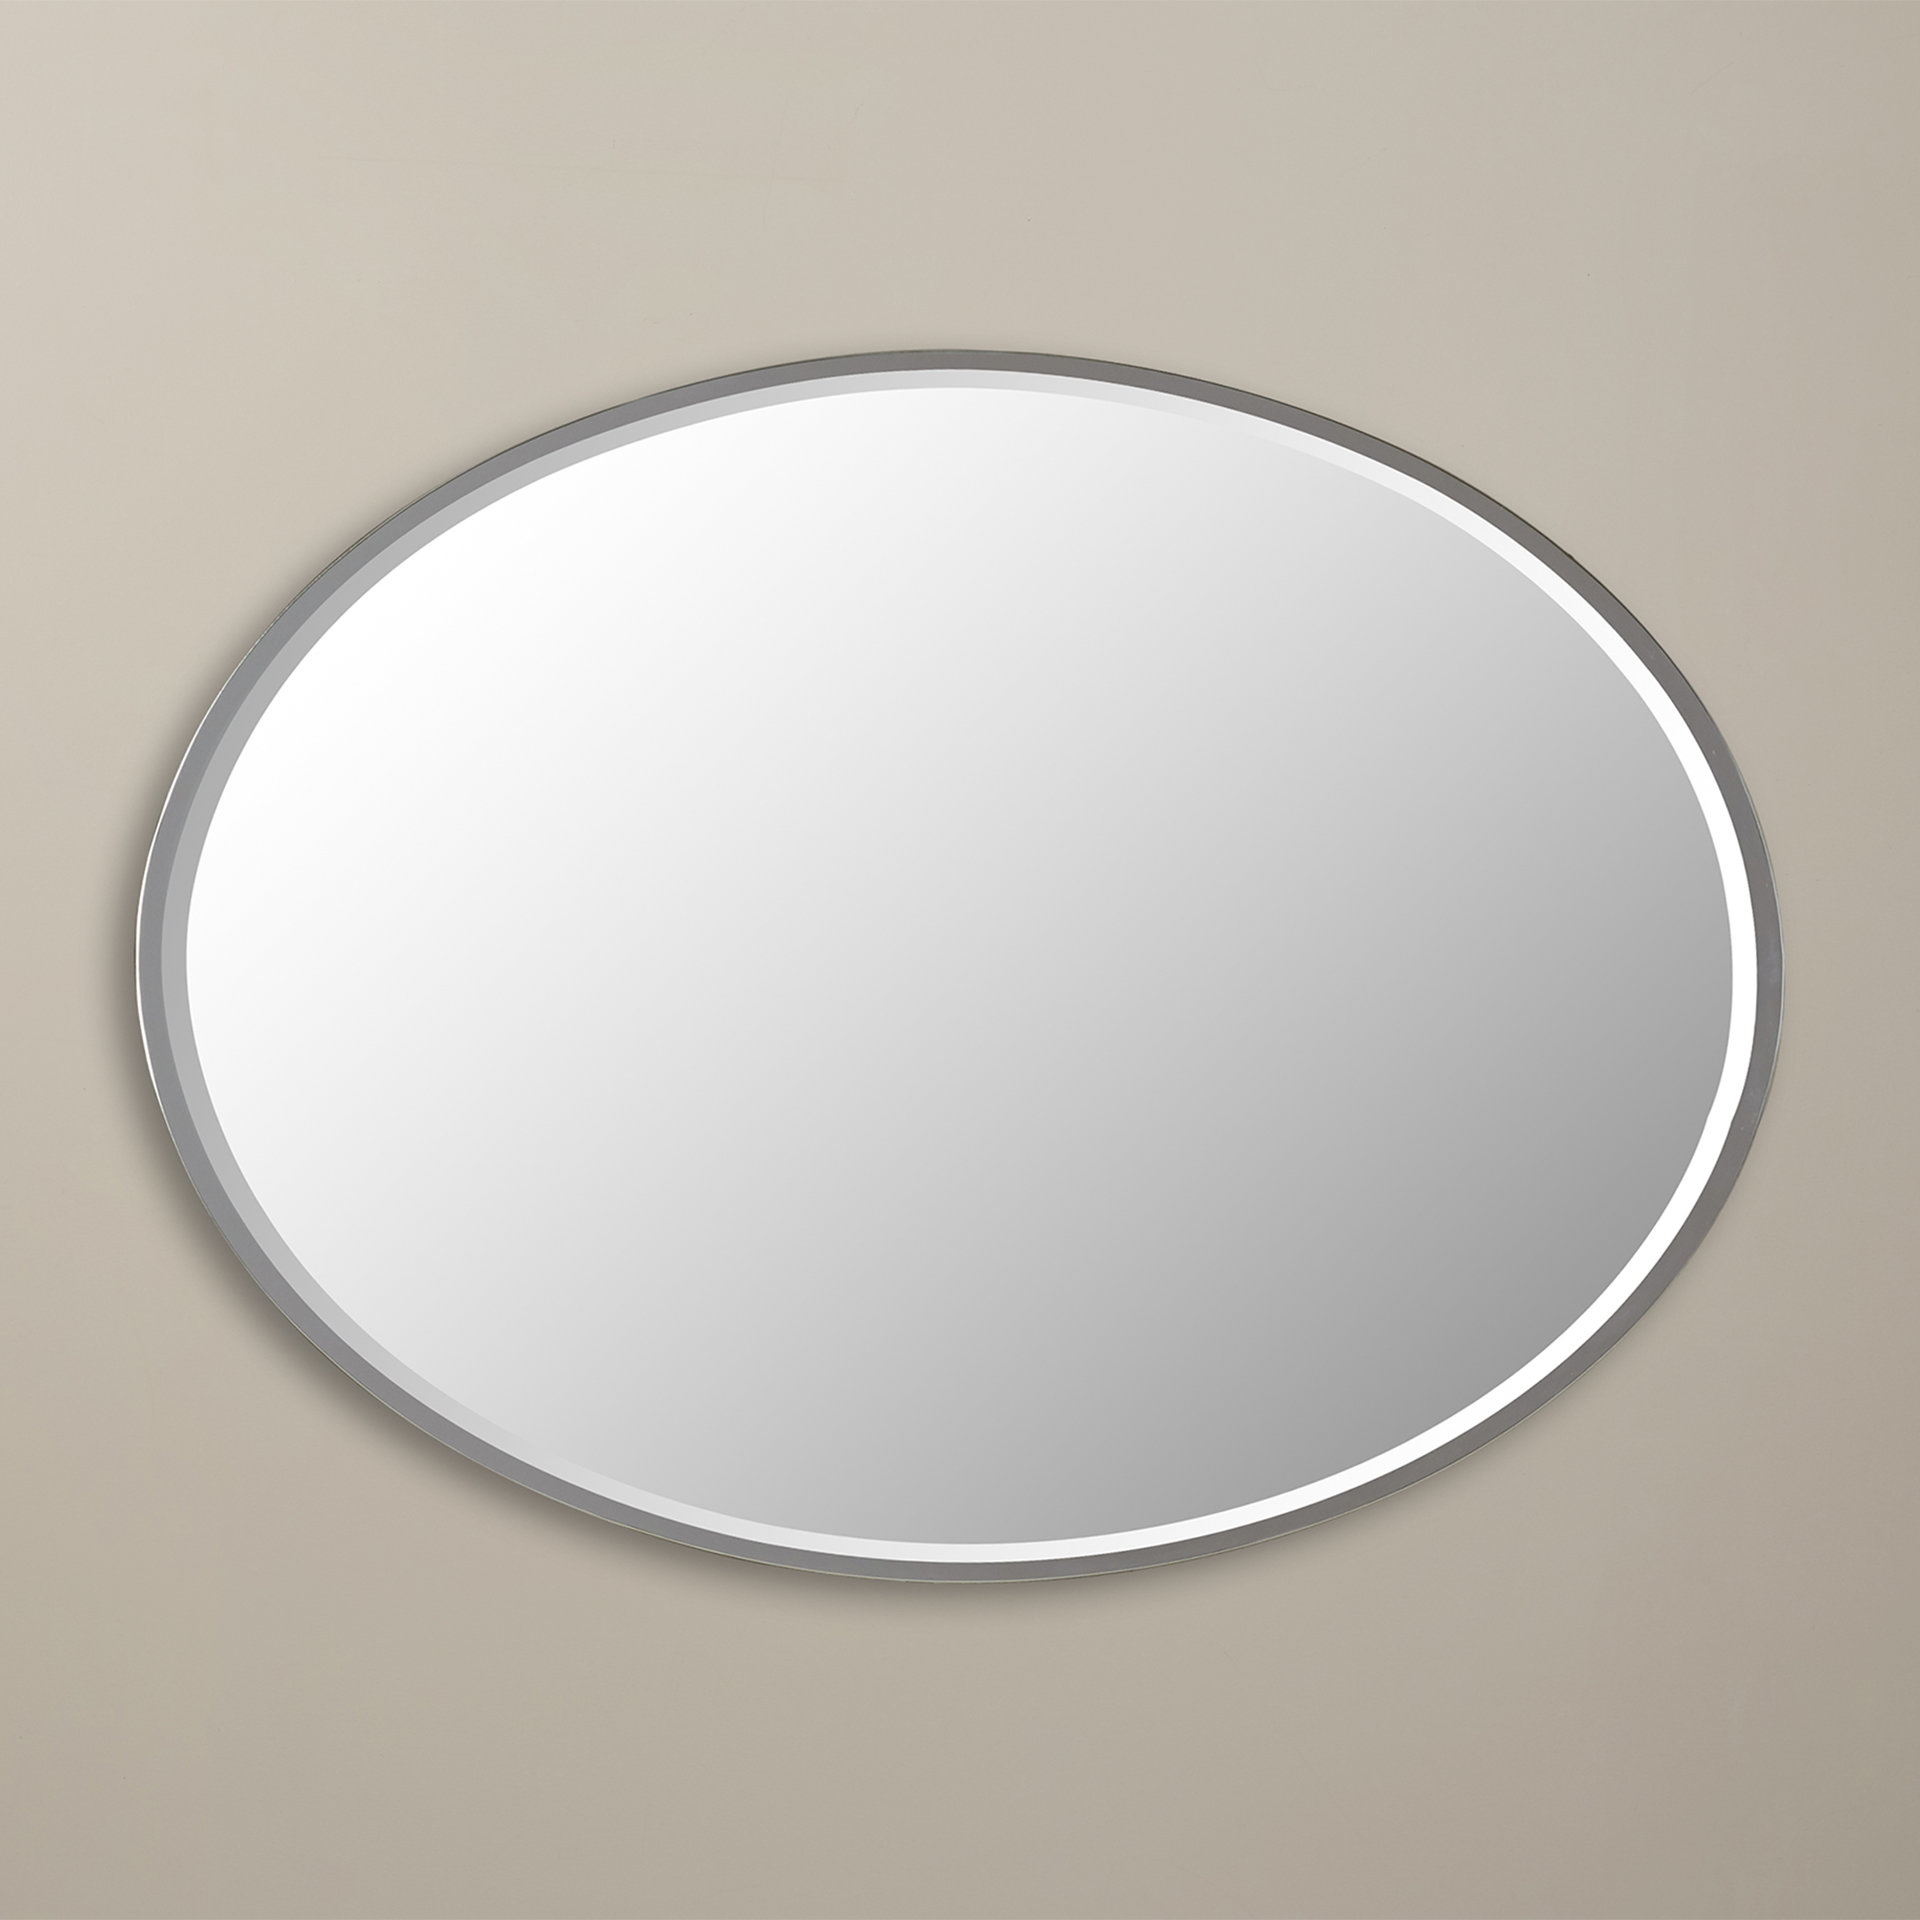 2019 Gaunts Earthcott Wall Mirrors Pertaining To Tarek Oval Wall Mirror (View 7 of 20)